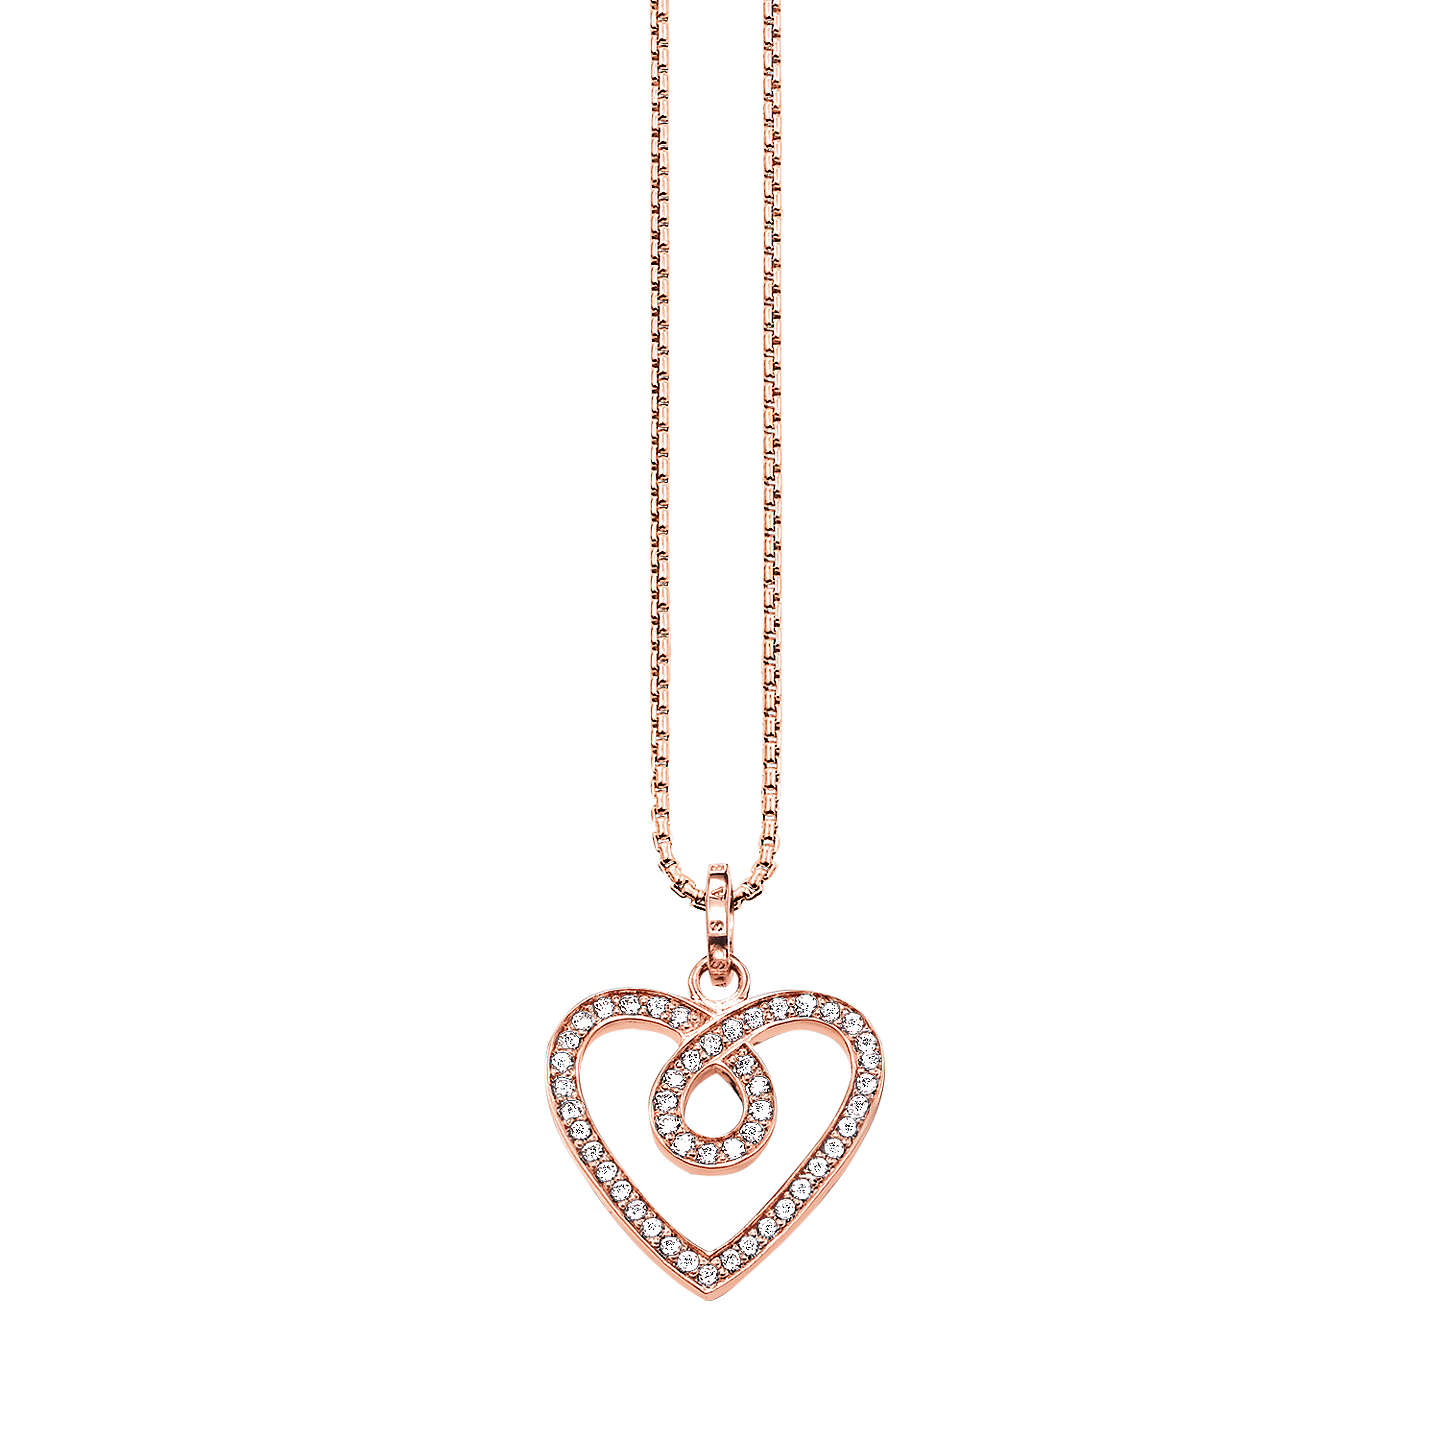 john chunky lewis johnlewis online necklace mini chain main com heart pdp rsp gold buyibb personalised at ibb